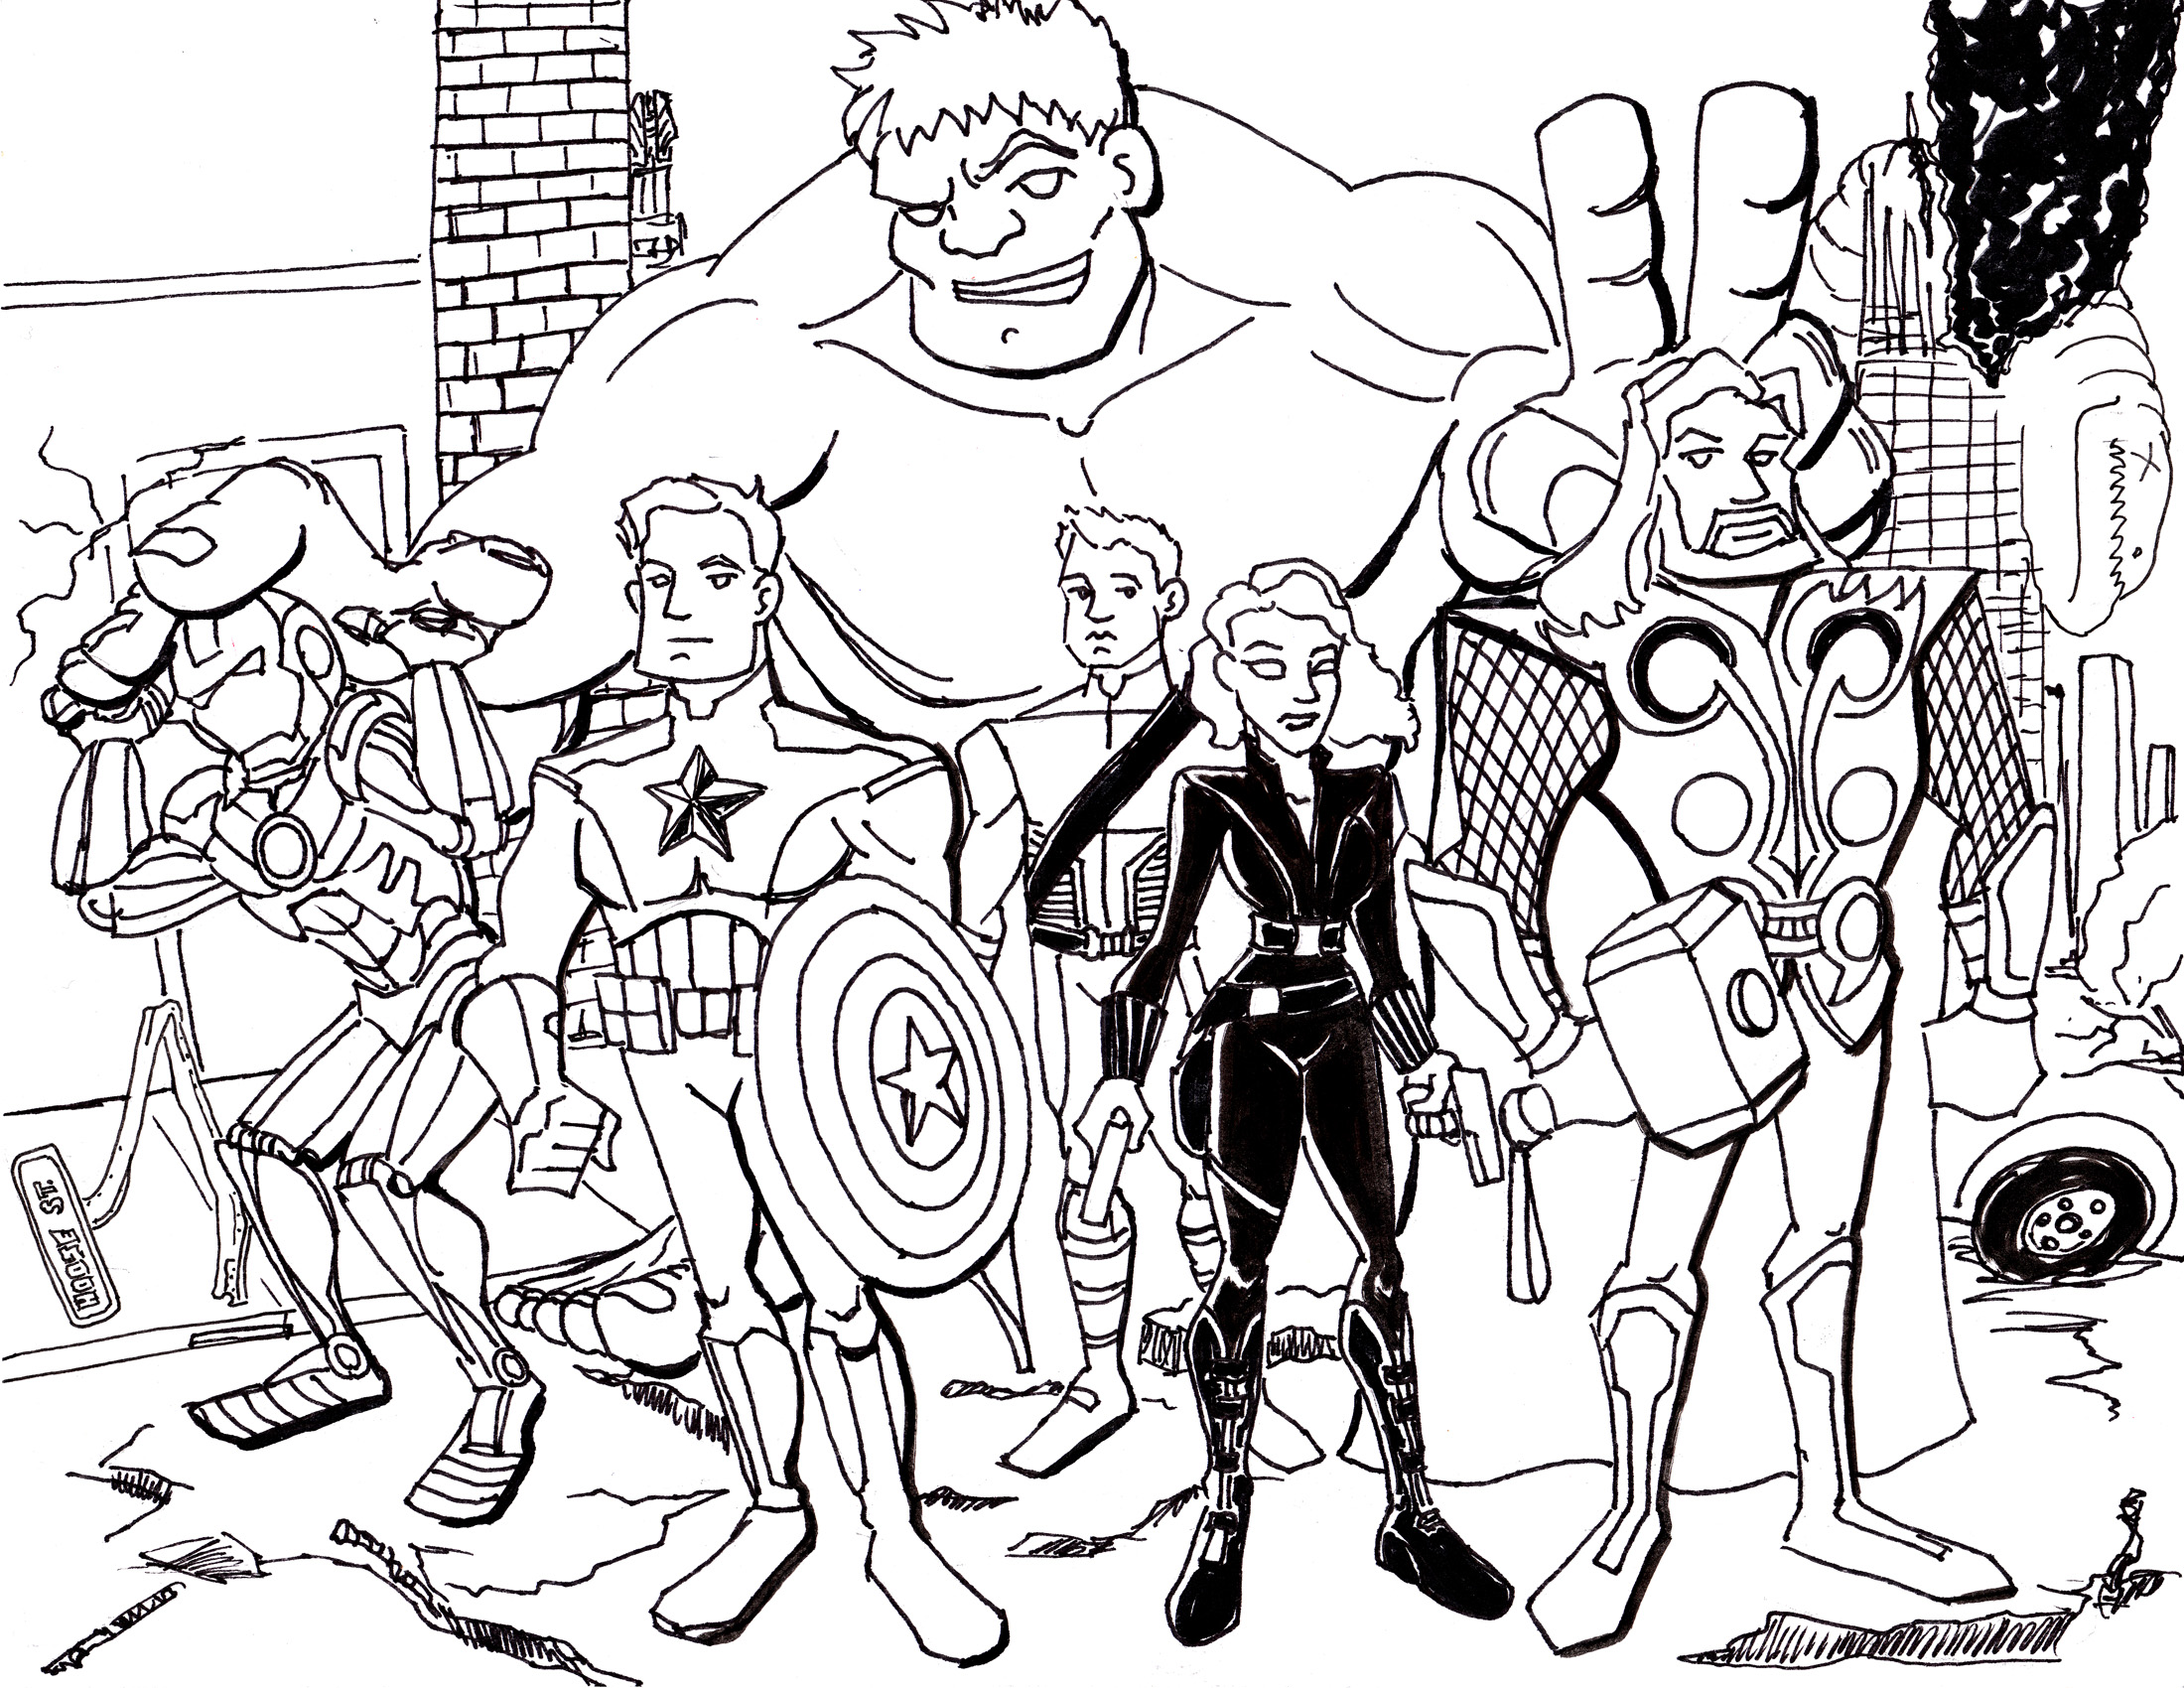 picture about Avengers Coloring Pages Printable referred to as Avengers Coloring Webpages - Ideal Coloring Web pages For Children